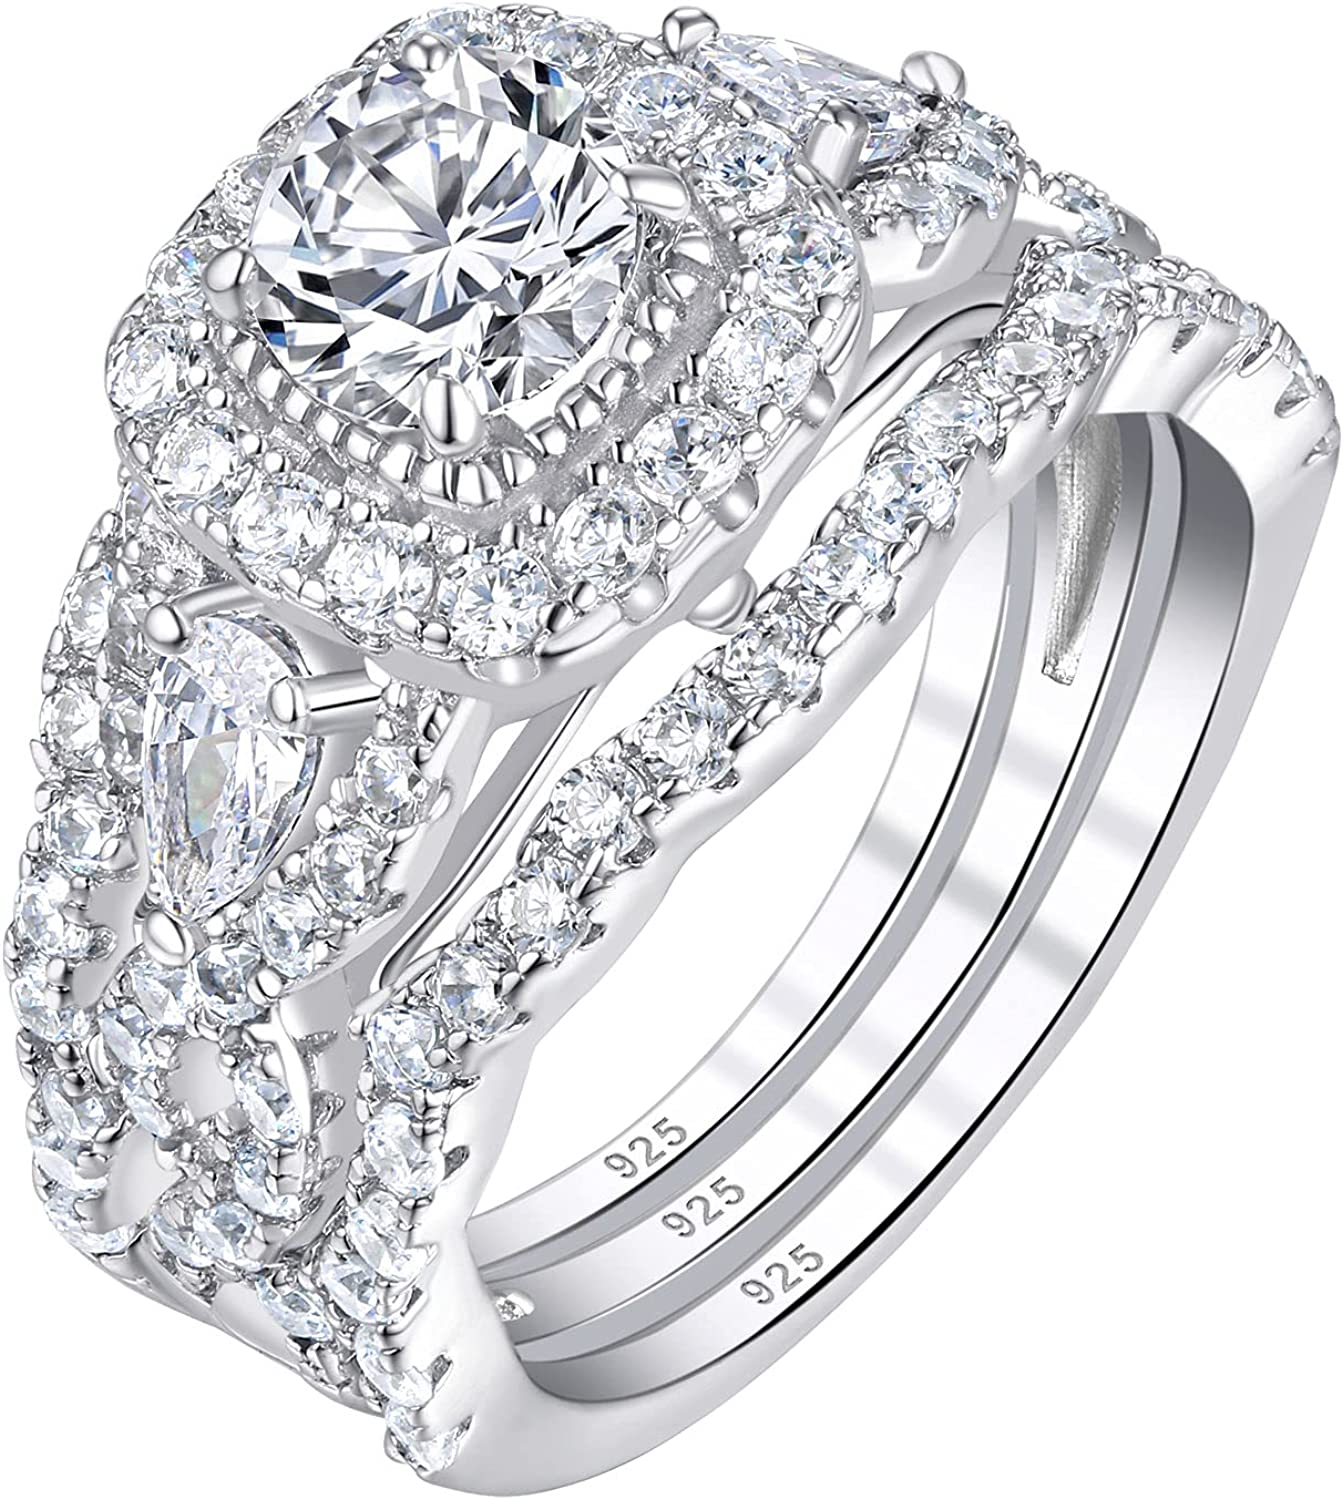 SHELOVES 925 Sterling Silver Wedding Rings White En El Paso Mall Cz Round Max 68% OFF Set